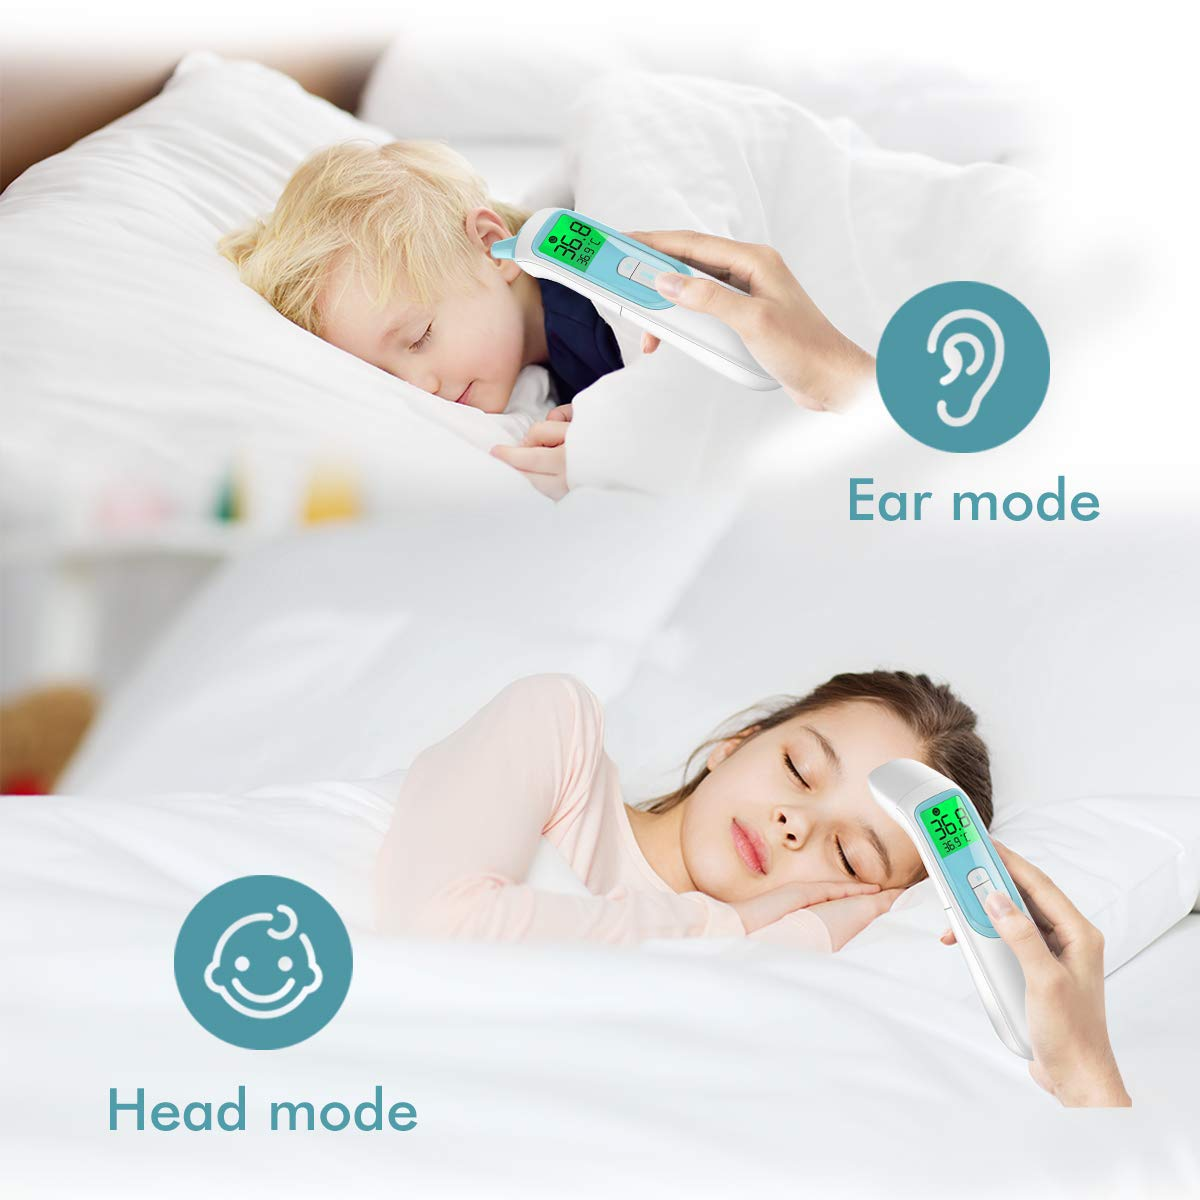 【Upgraded Version】Mosen Medical Infrared Magnetic Thermometer for Fever Easy Operation 1s Measurement Professional Certification Ear and Forehead Thermometer for Baby Kids Adults Surface and Room